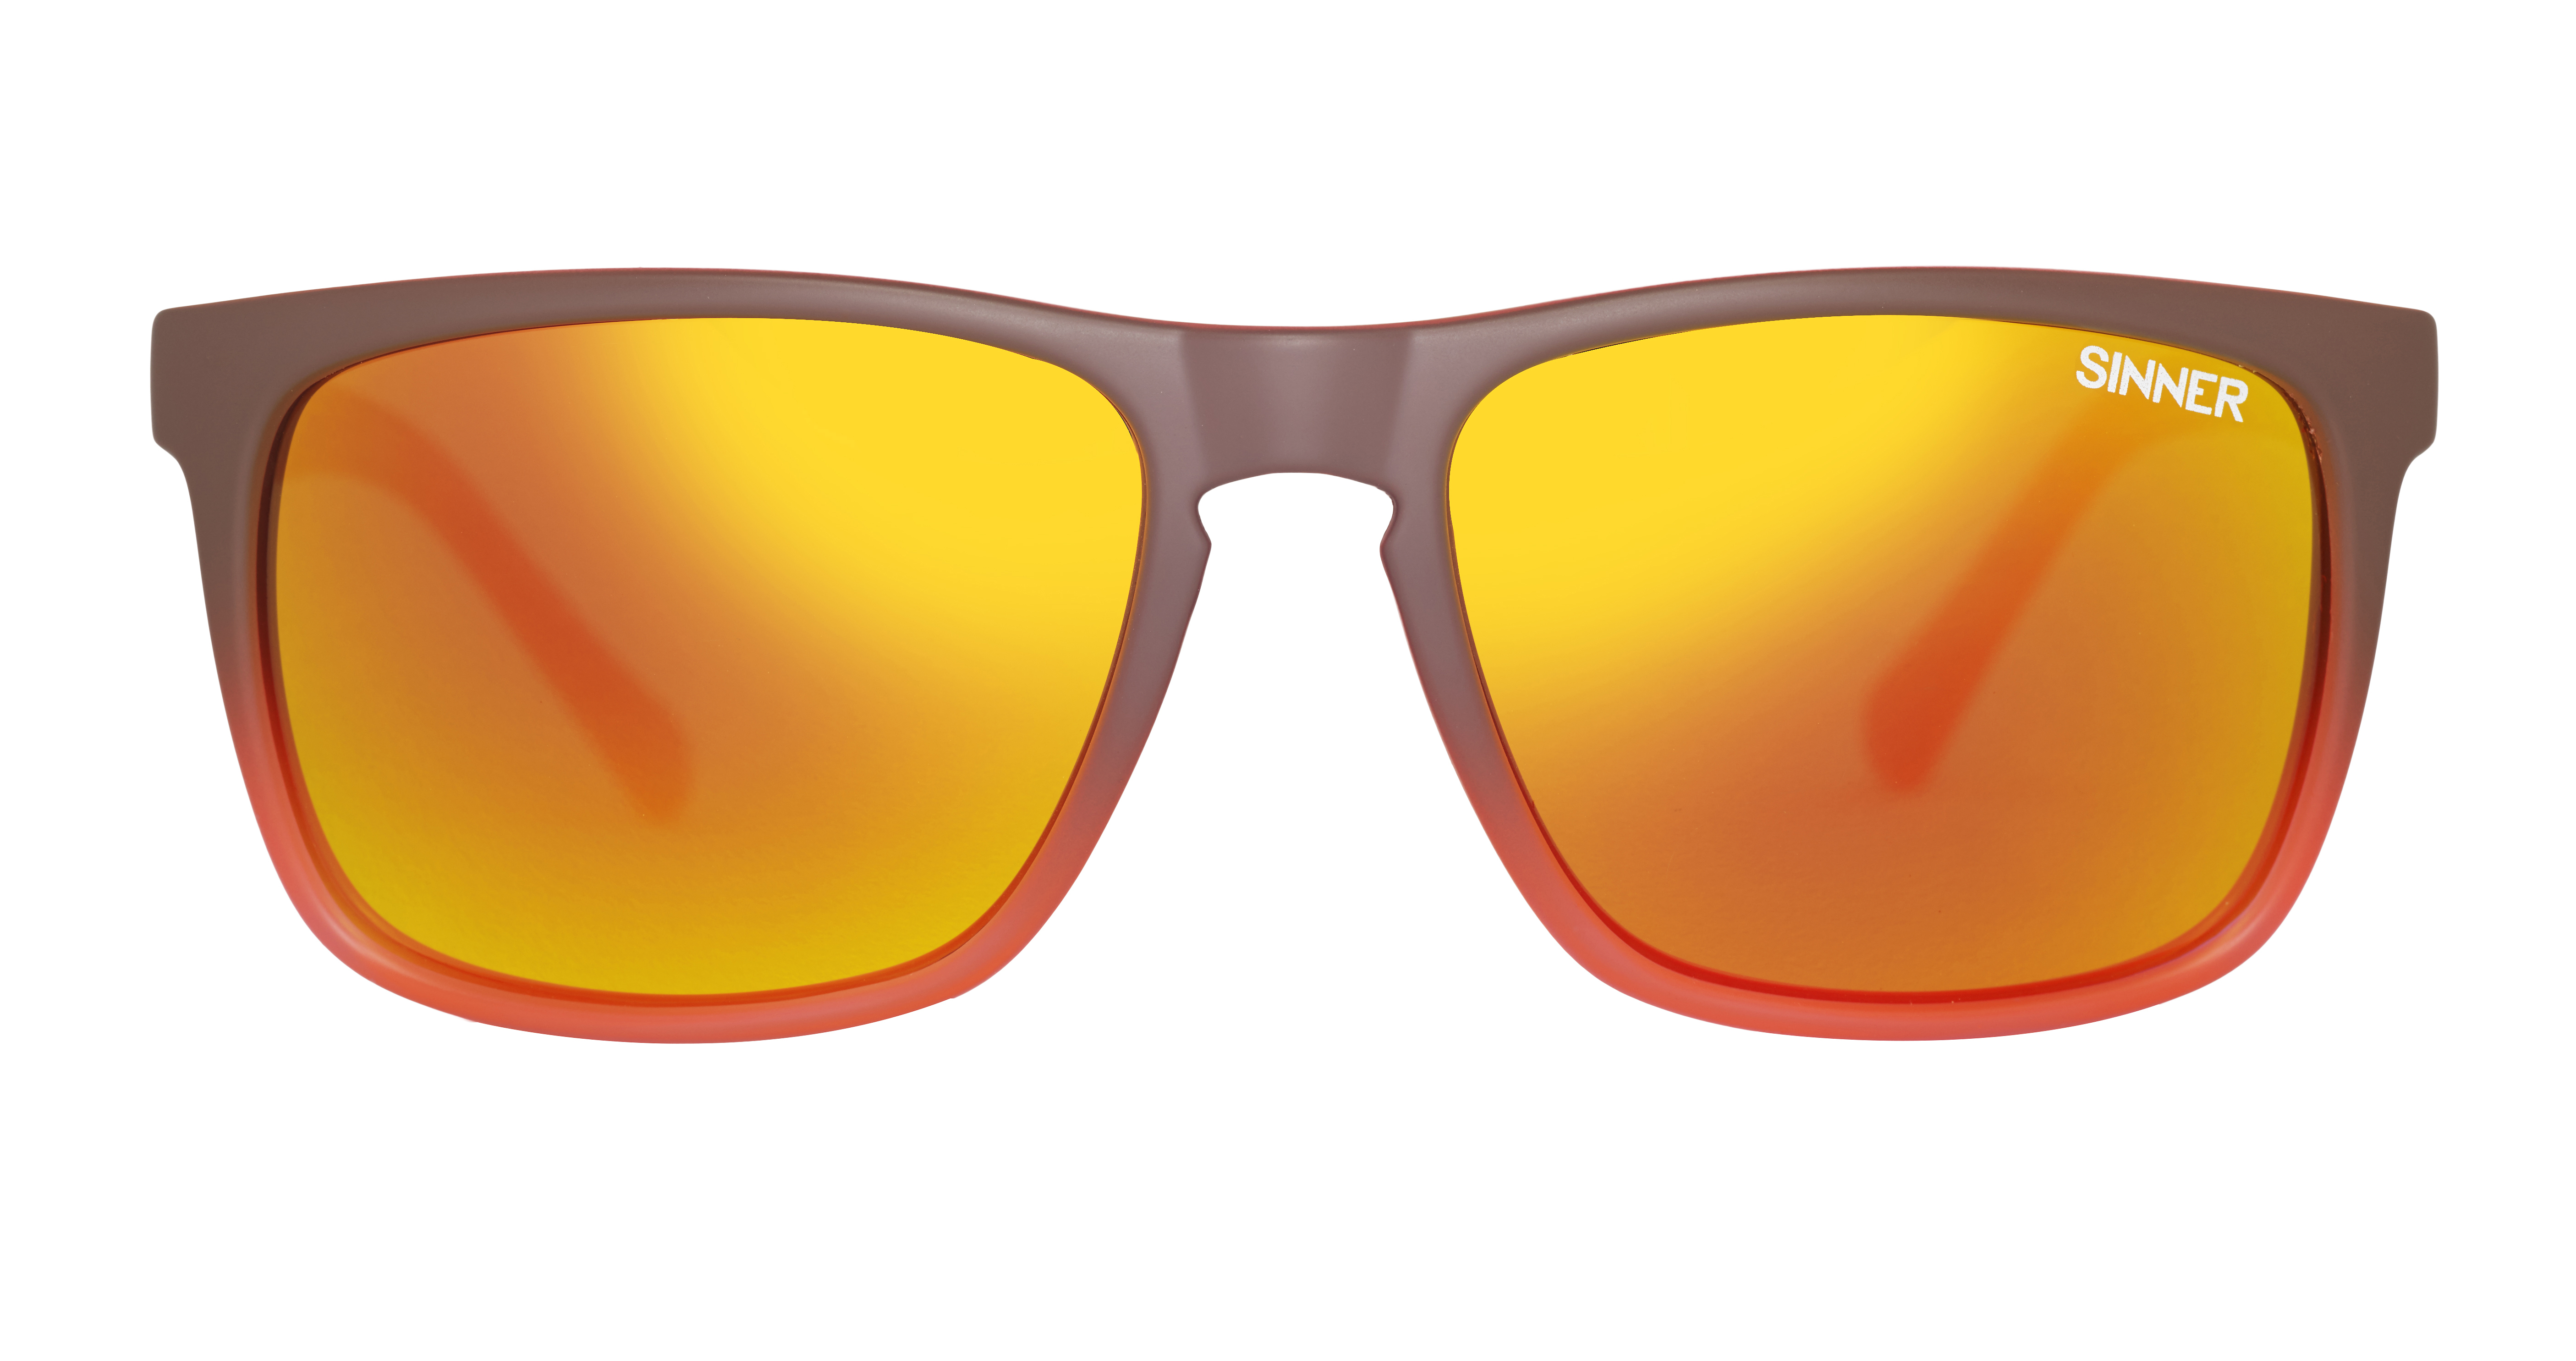 170a56aefe5 Sinner Oak Matte Brown Orange CX Sintec Brown Orange Mirror Polarized  Sunglasses - Hyped Sports